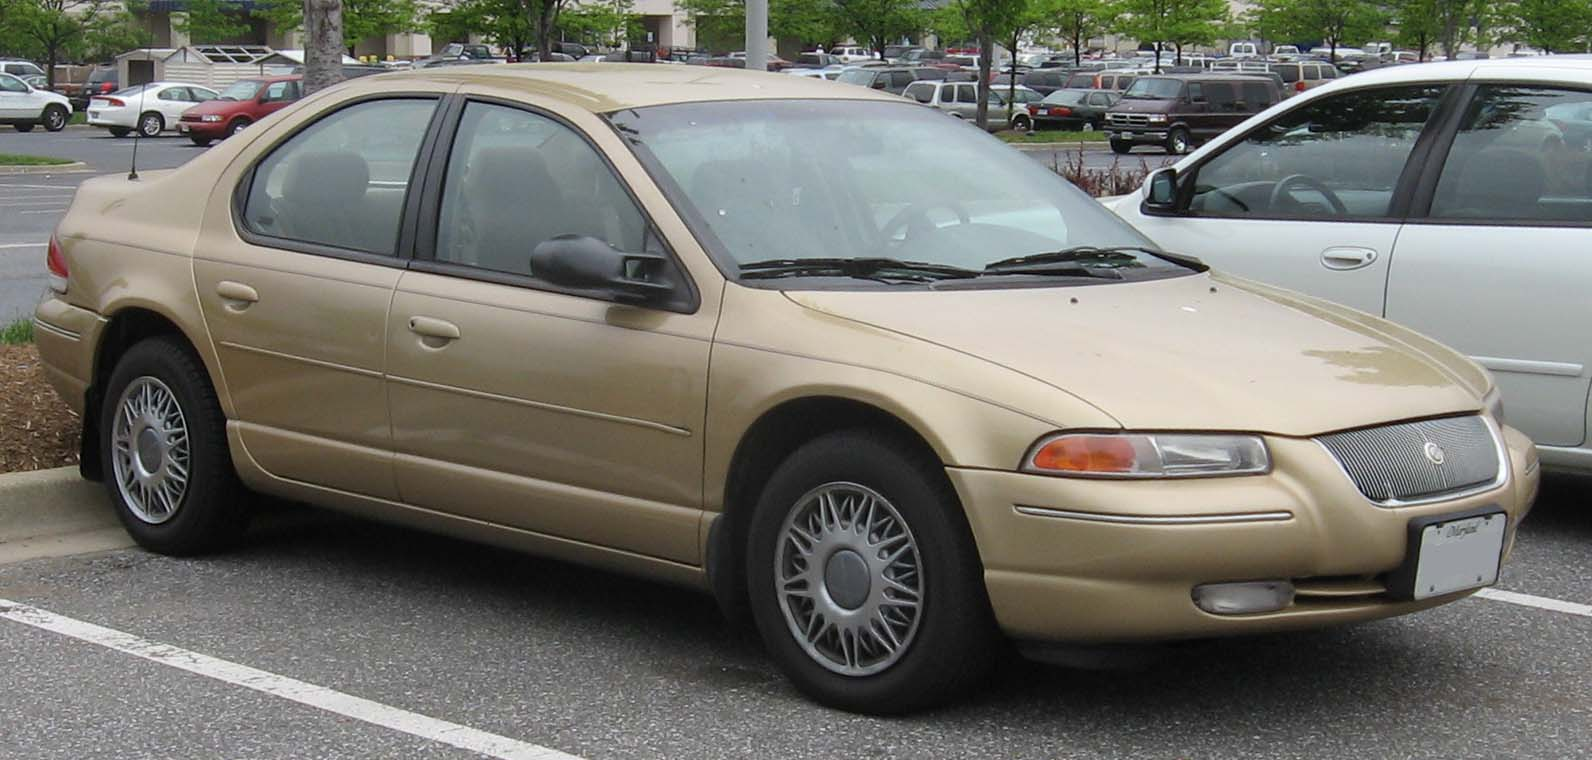 1995 Chrysler Cirrus #2